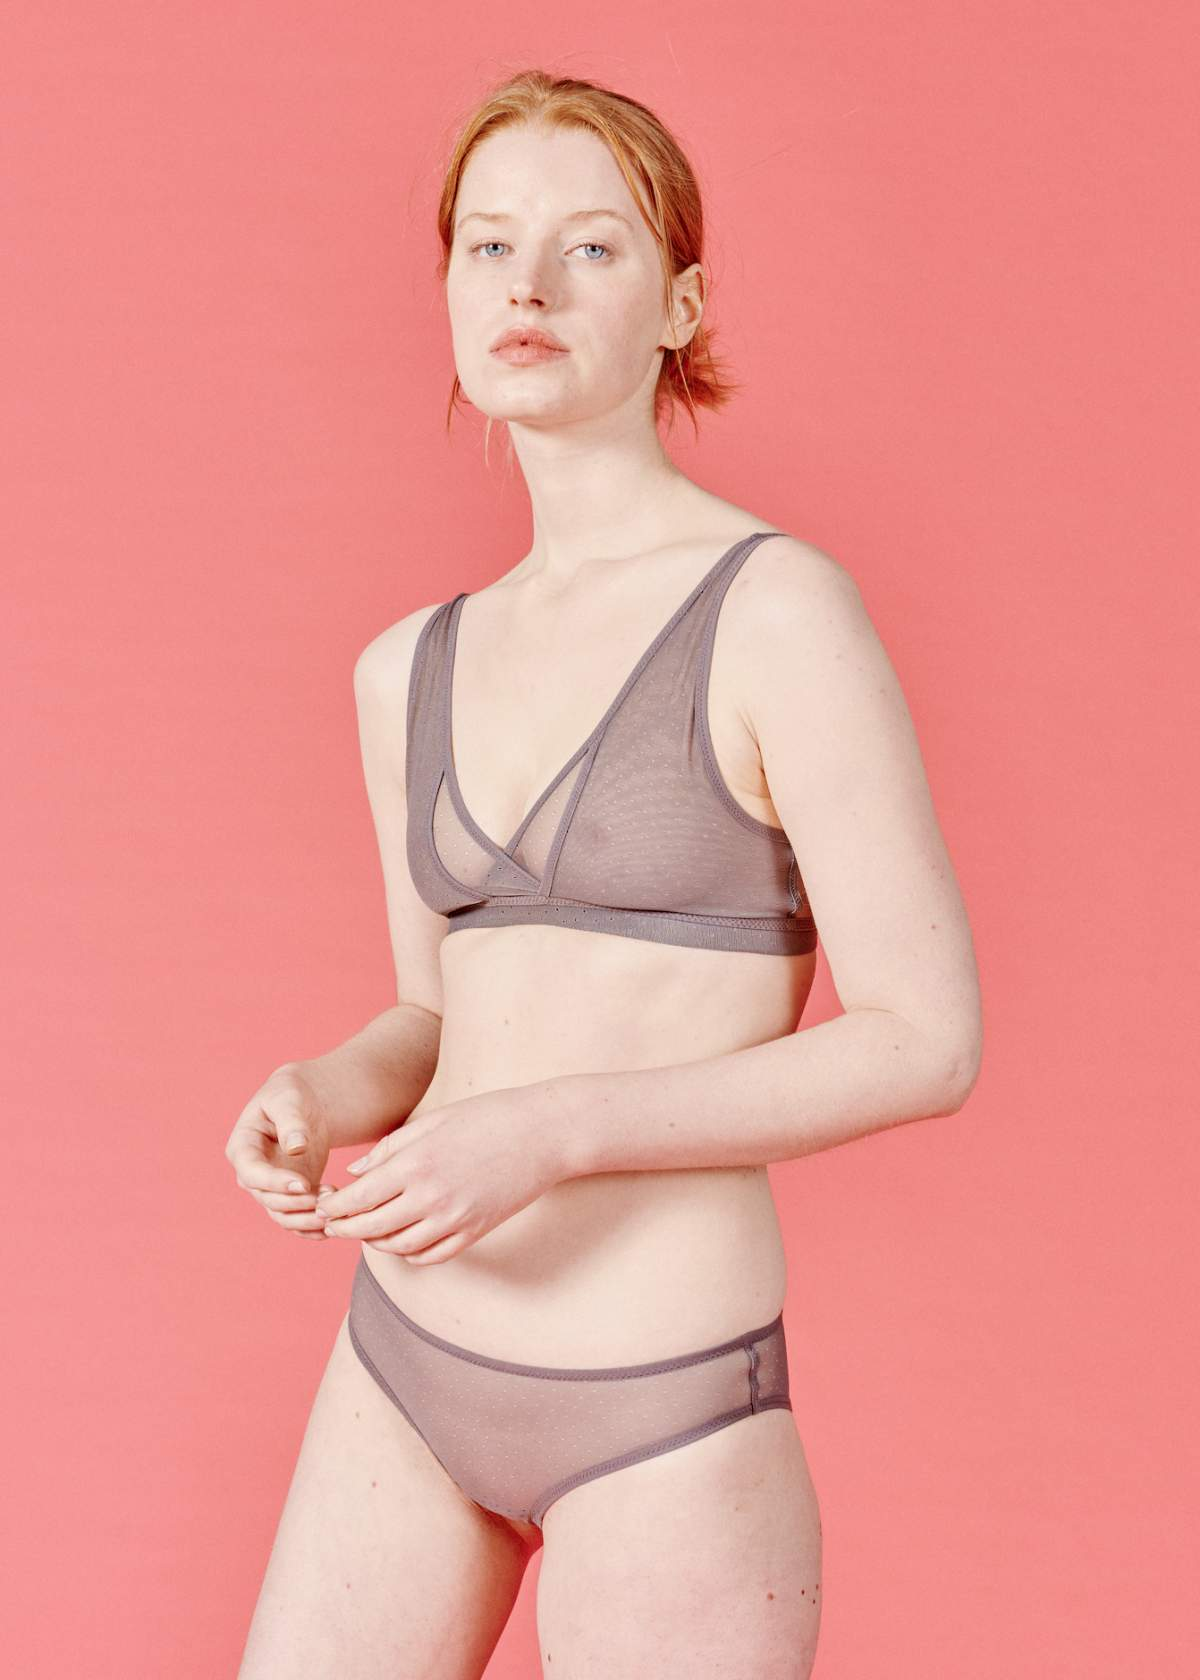 Sustainable & Ethical Lingerie: Sustainably Sexy Brands Image by Lara Intimates #sustainablefashion #lingerie